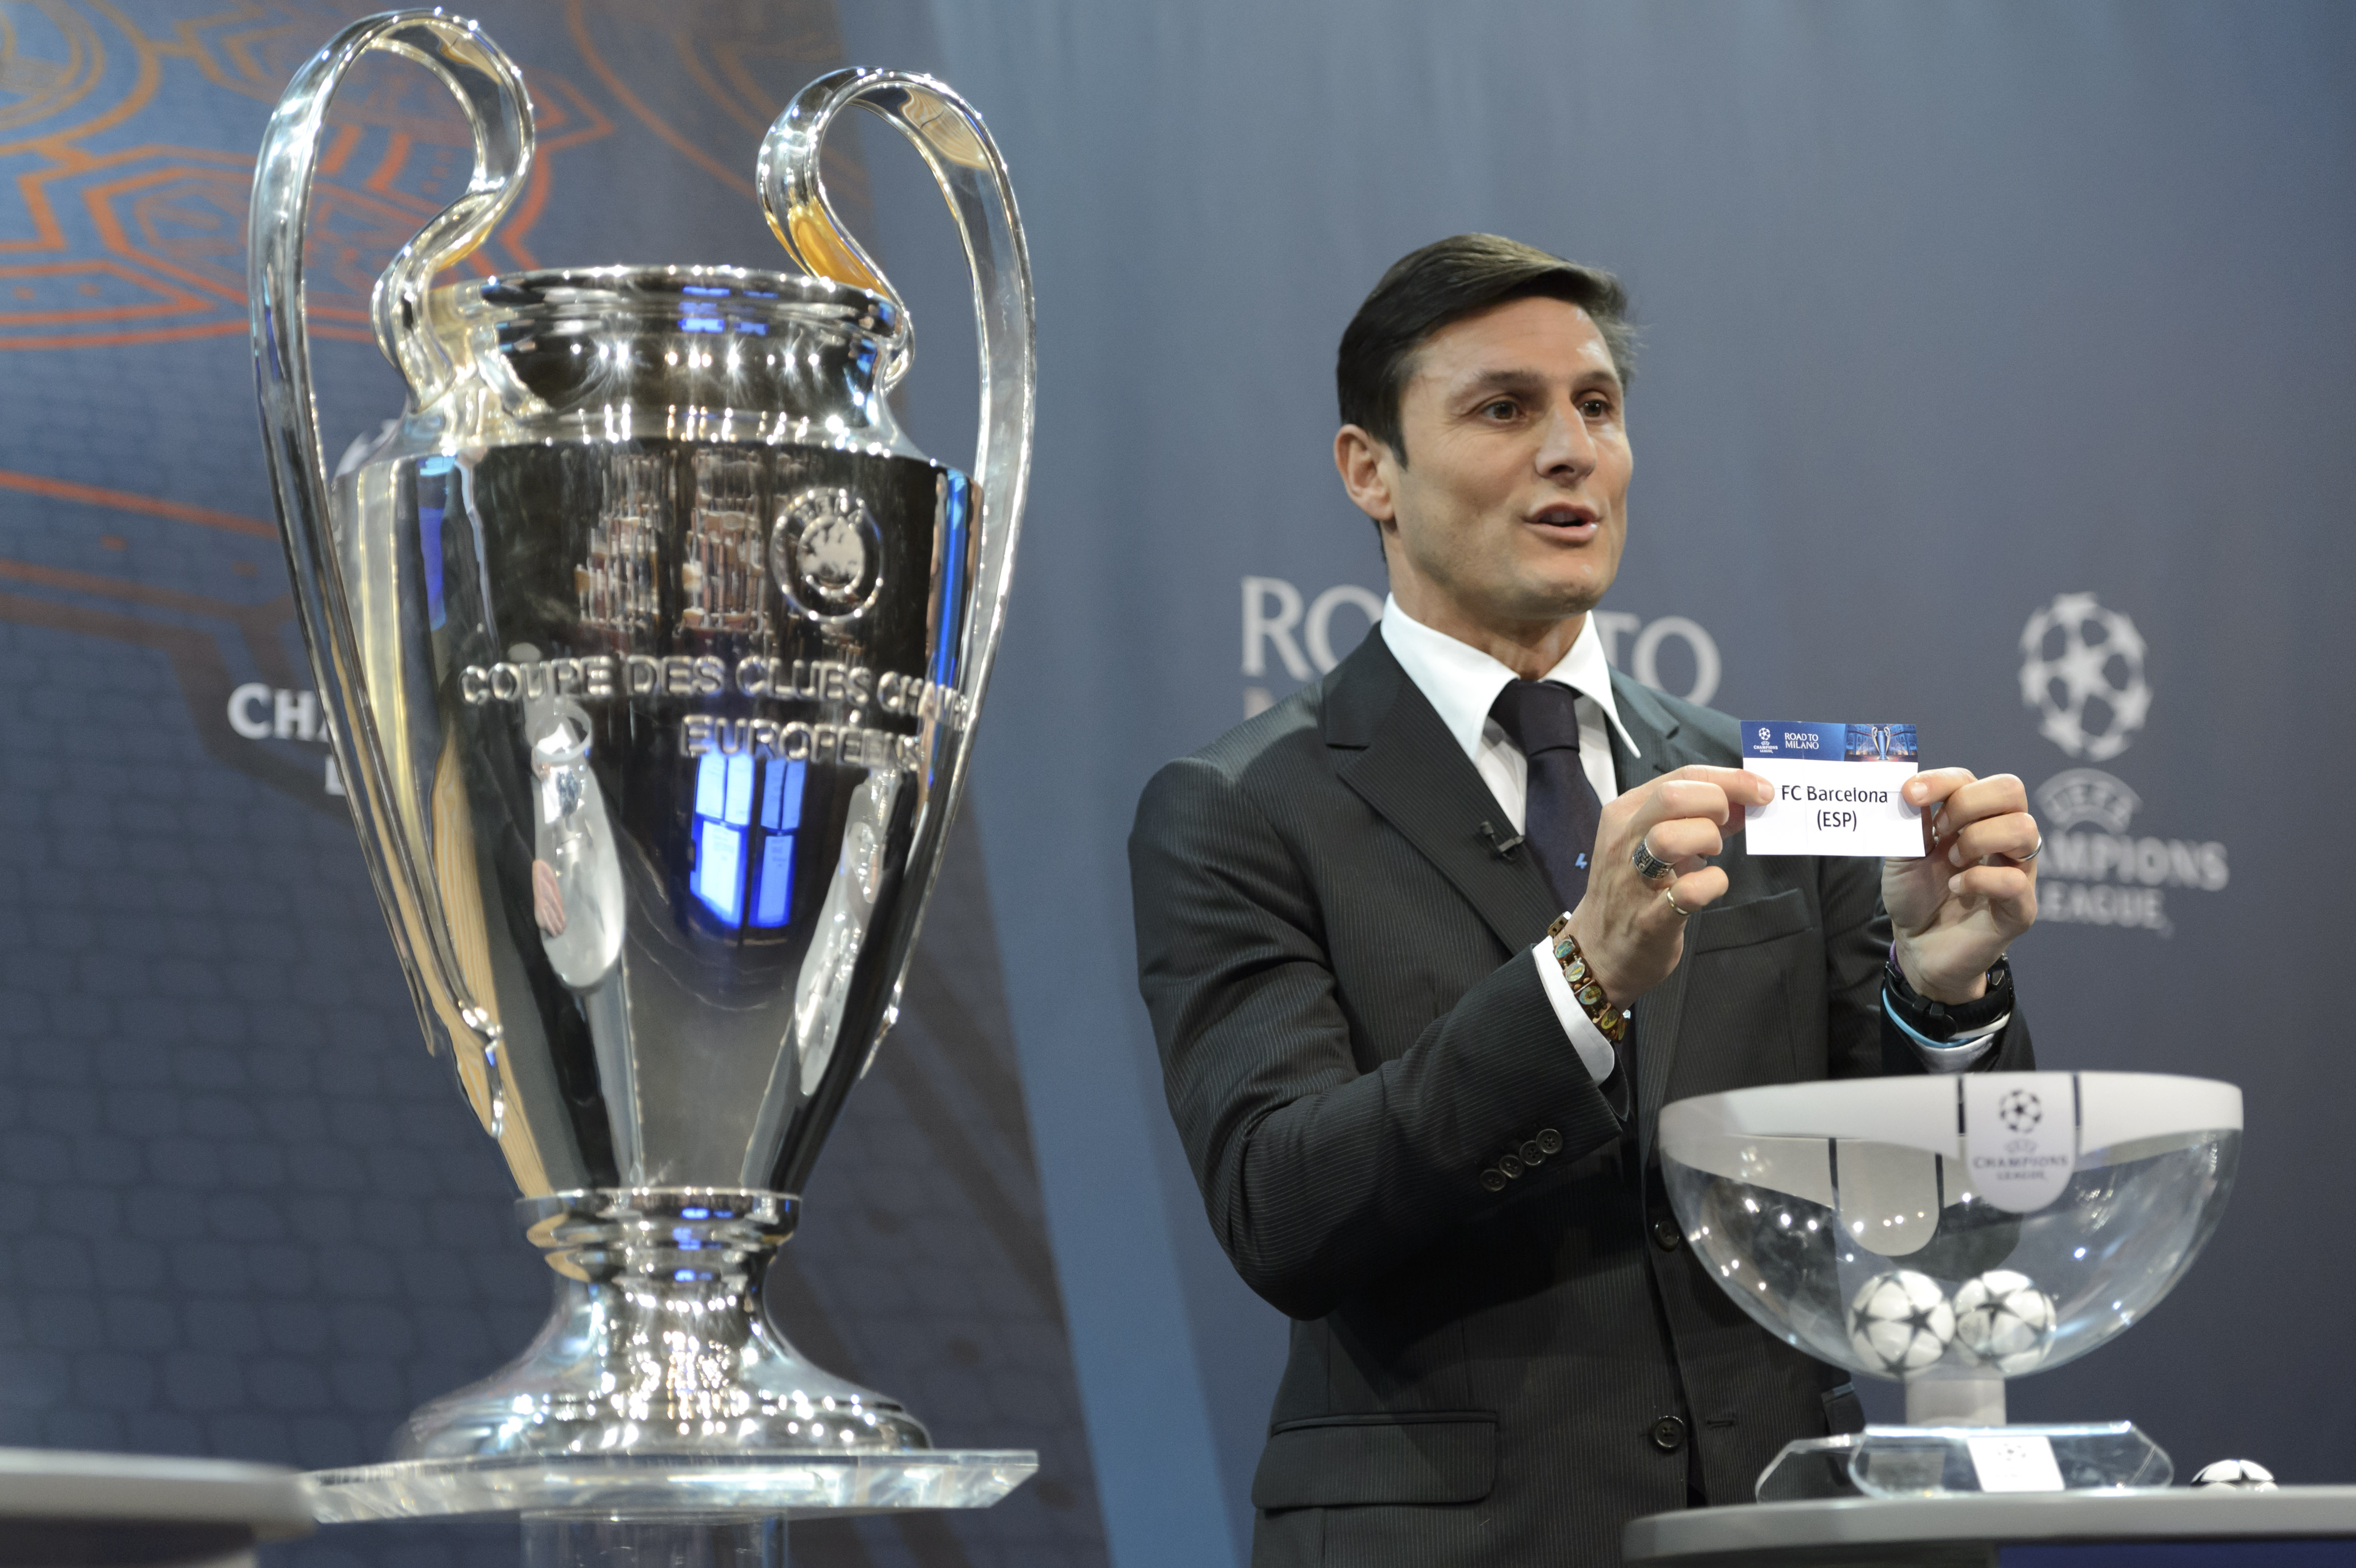 Former Italian soccer player Javier Zanetti, ambassador for the UEFA Champions League final in Milan,  shows the  ticket of FC Barcelona during the draw of the 2015/16  Champions League Round of 16 at the UEFA Headquarters in Nyon, Switzerland, Monday, Dec. 14, 2015. Photo: AP